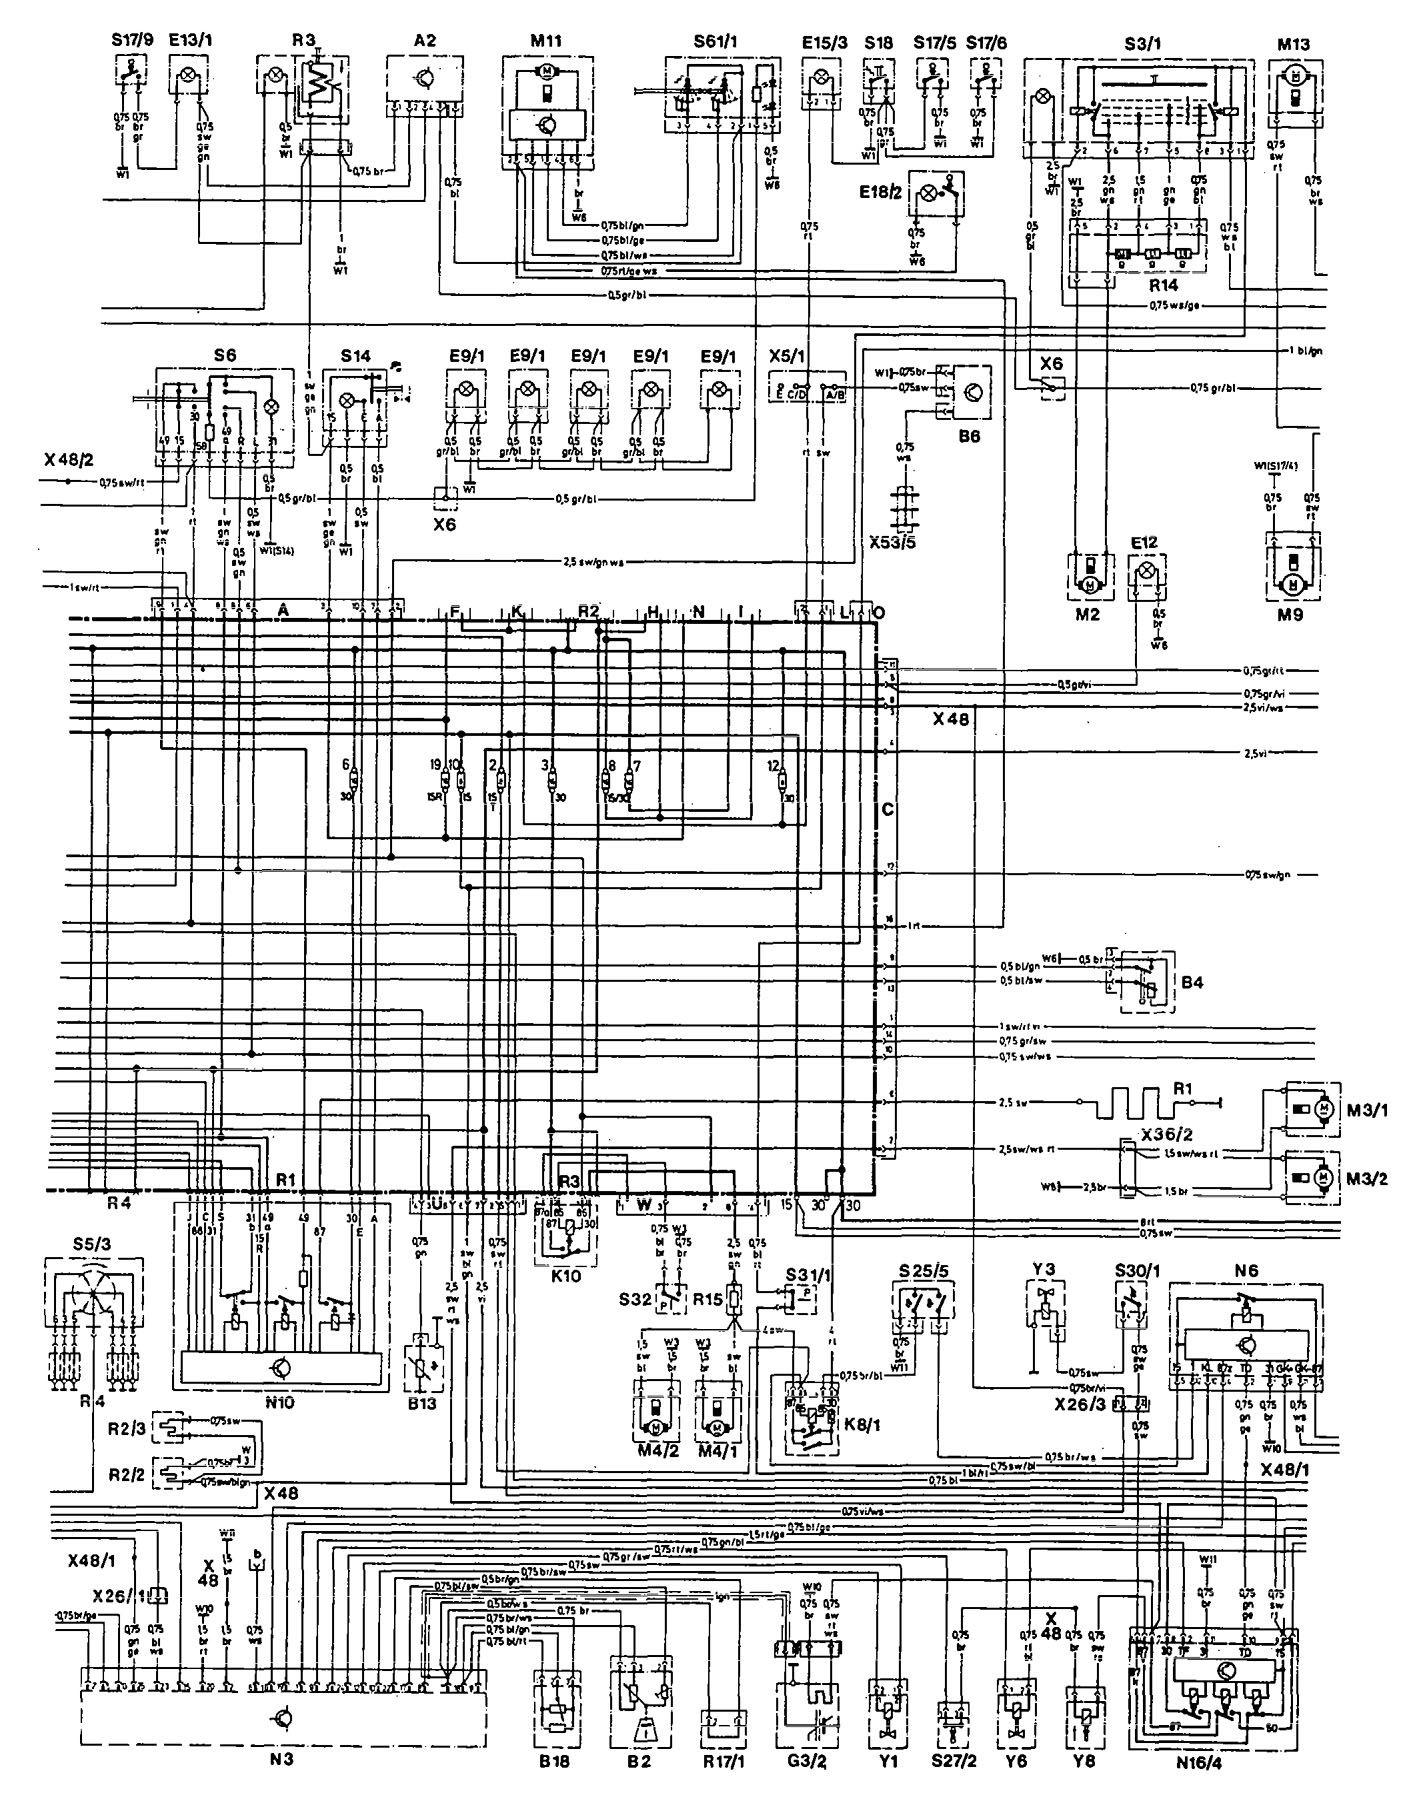 Mercedes 190E 1993 wiring diagrams charging system CARKNOWLEDGE